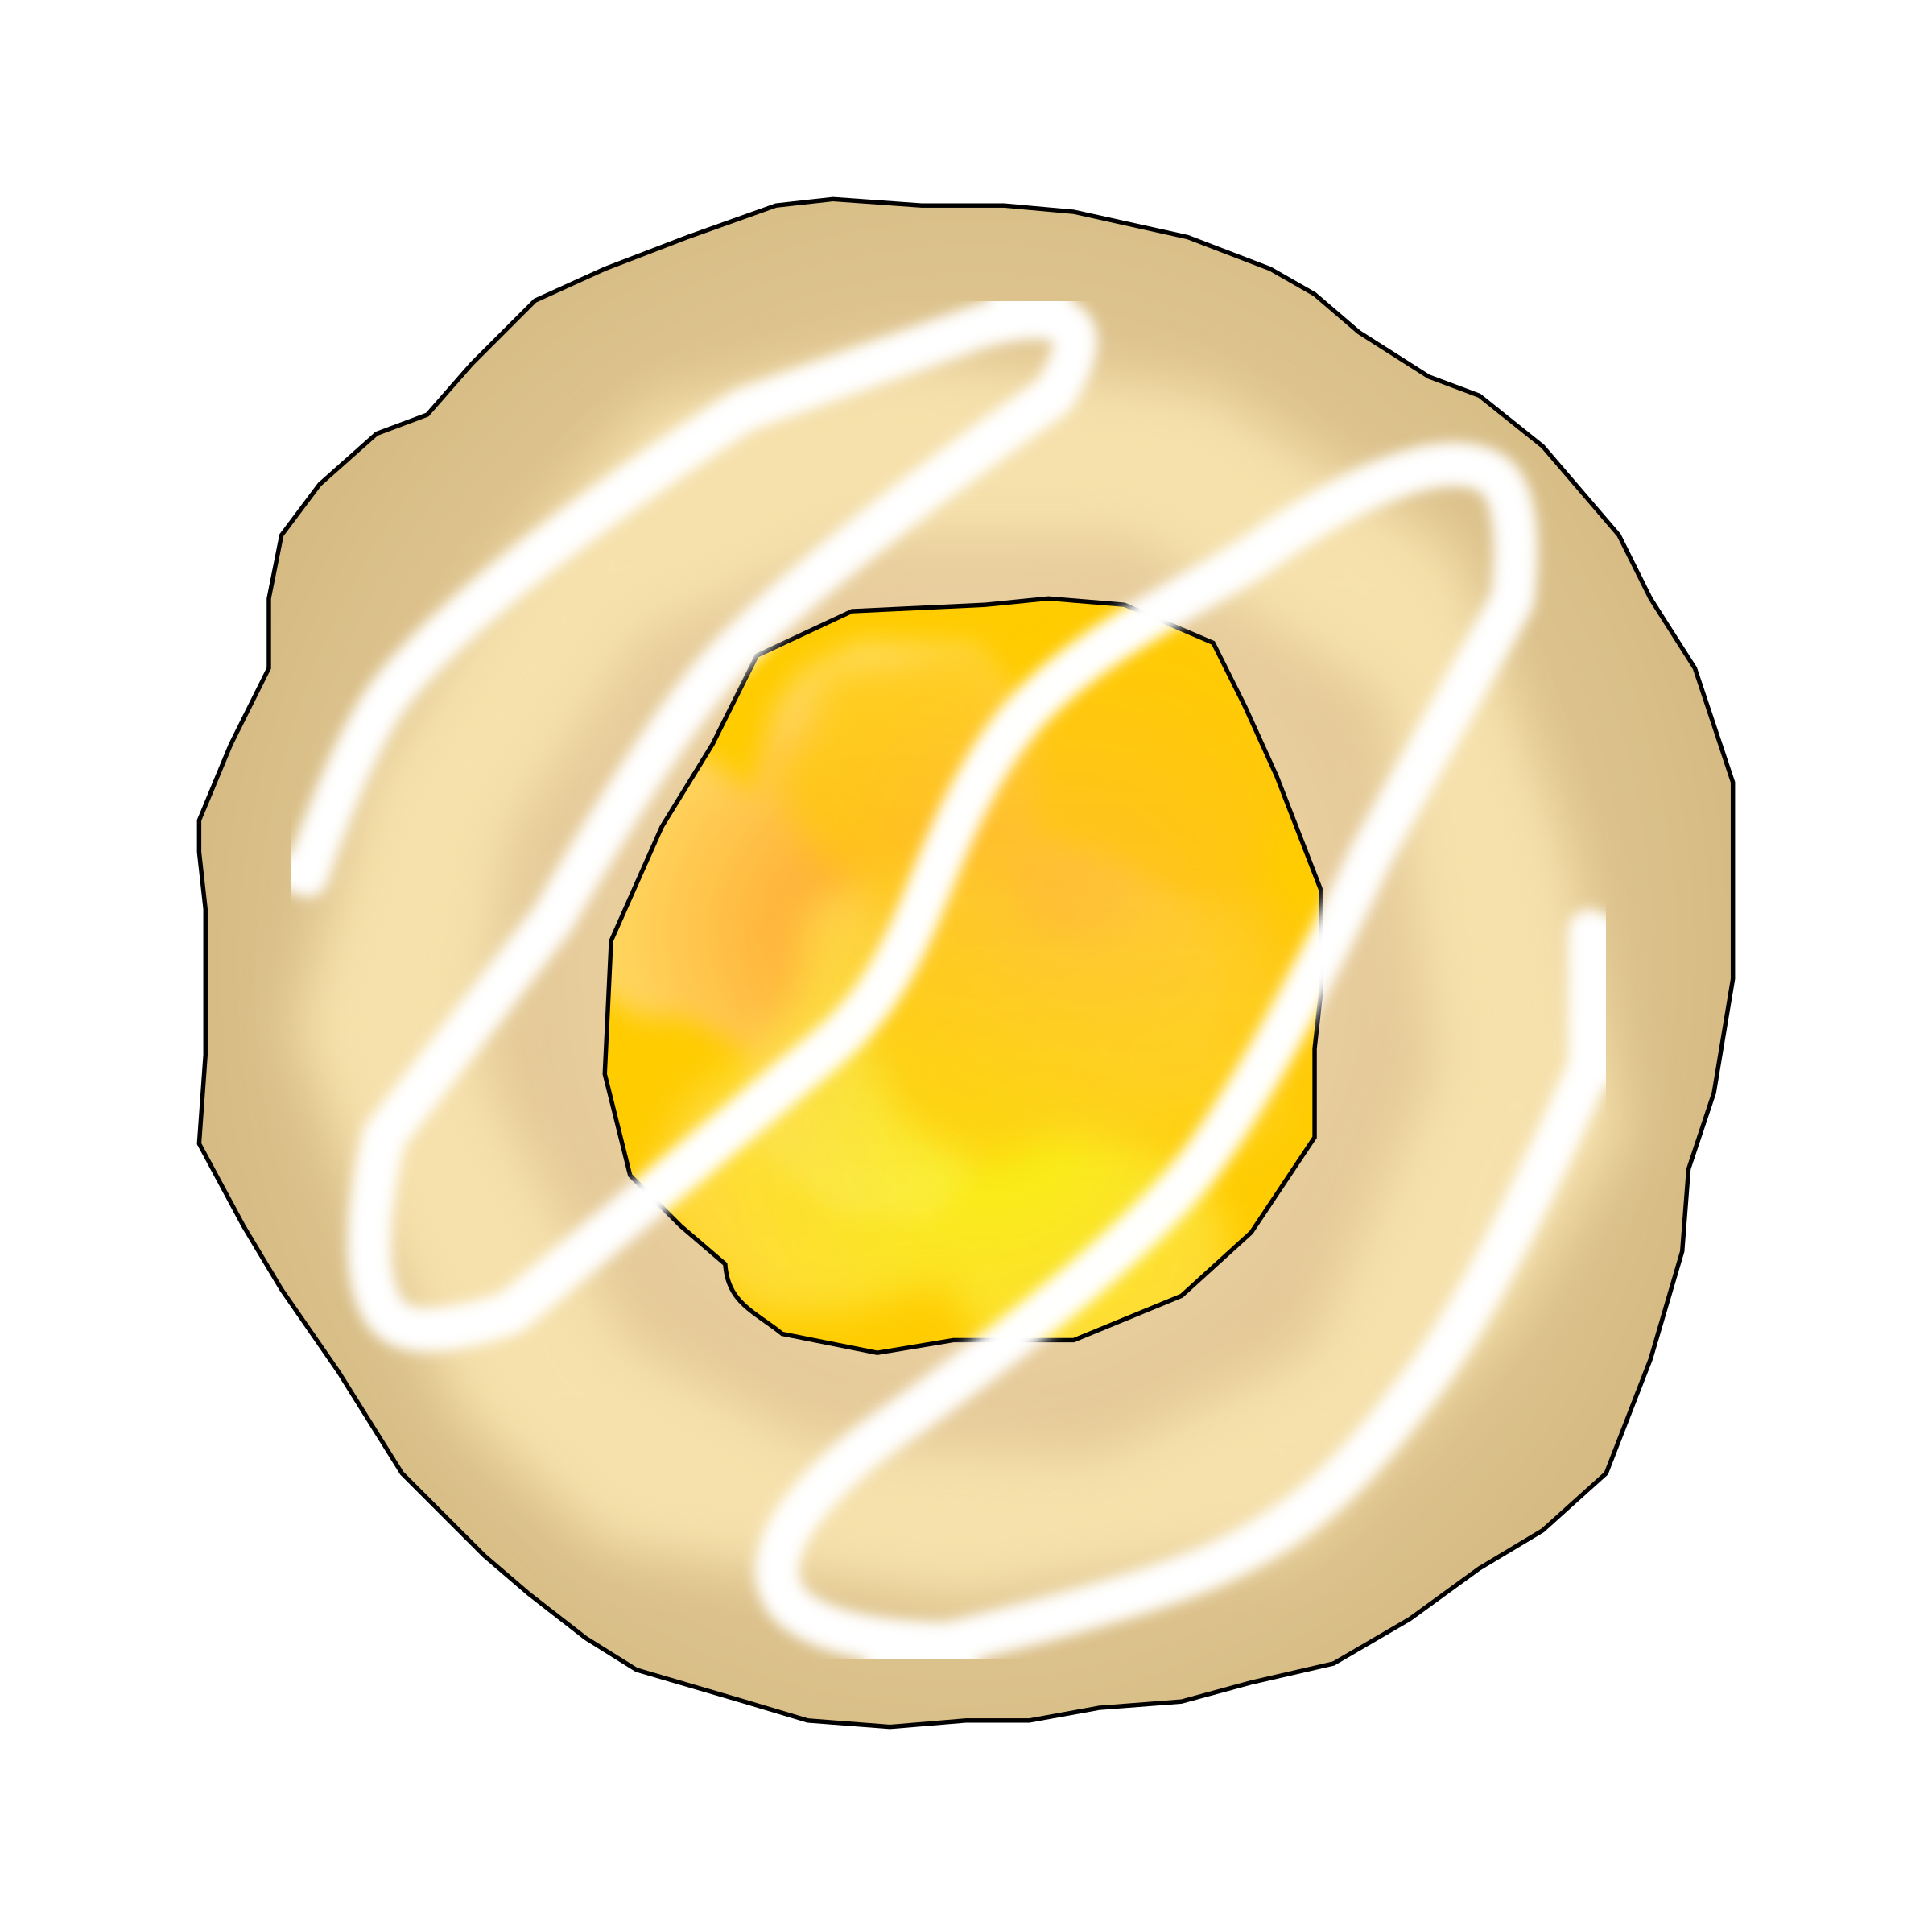 Lemon Thumbprint Cookie by PinkJellyfish